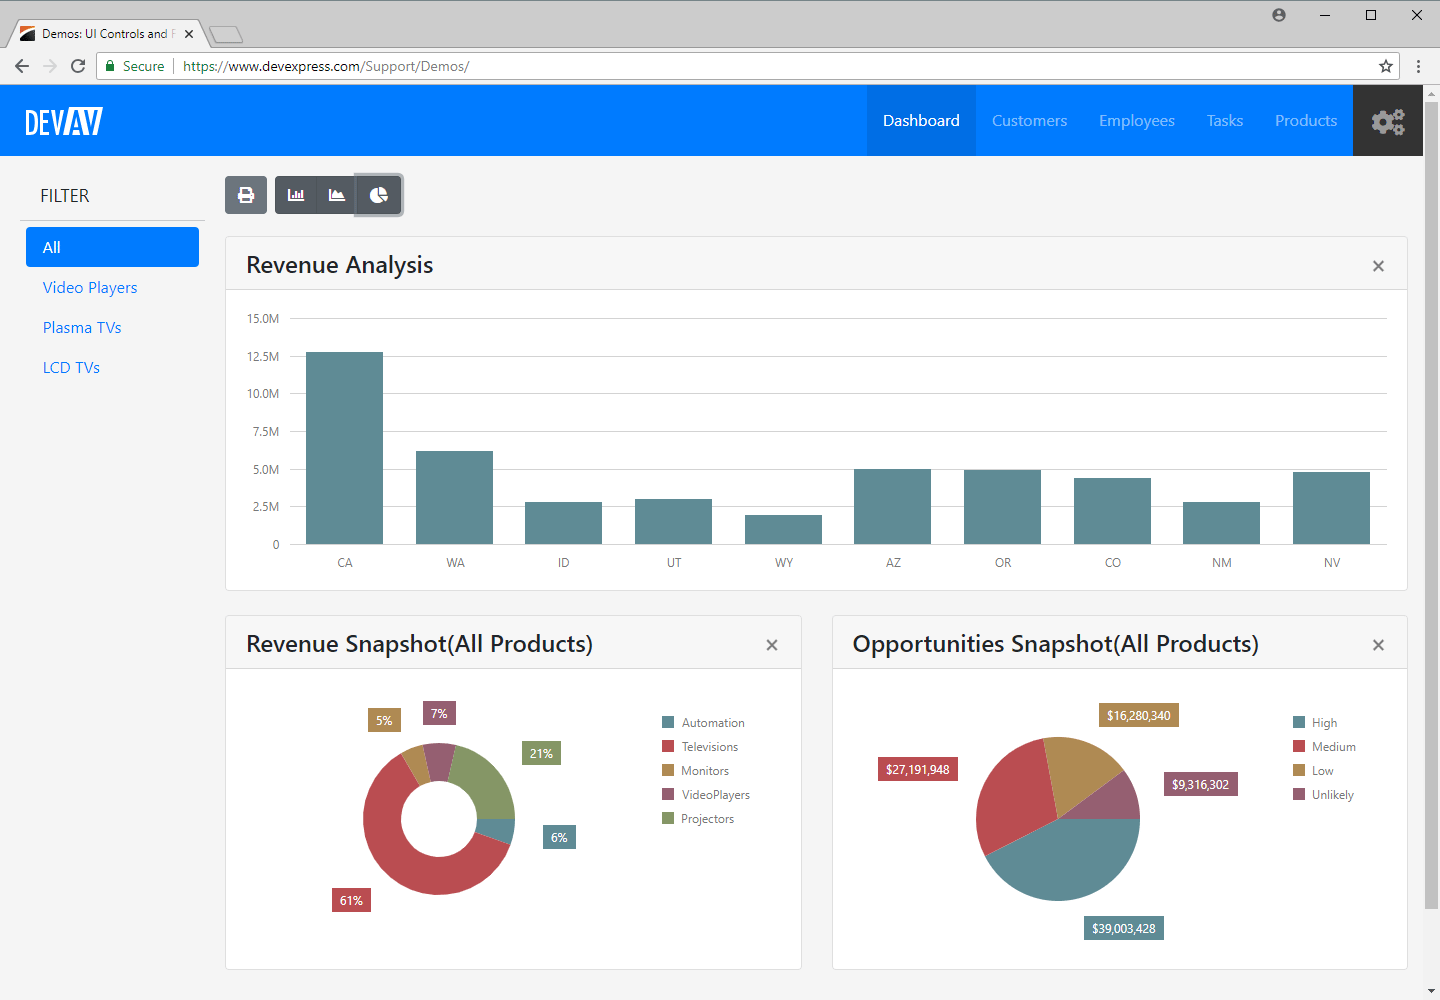 ASP.NET Bootstrap Web Forms App - Dashboard View with Chart Controls